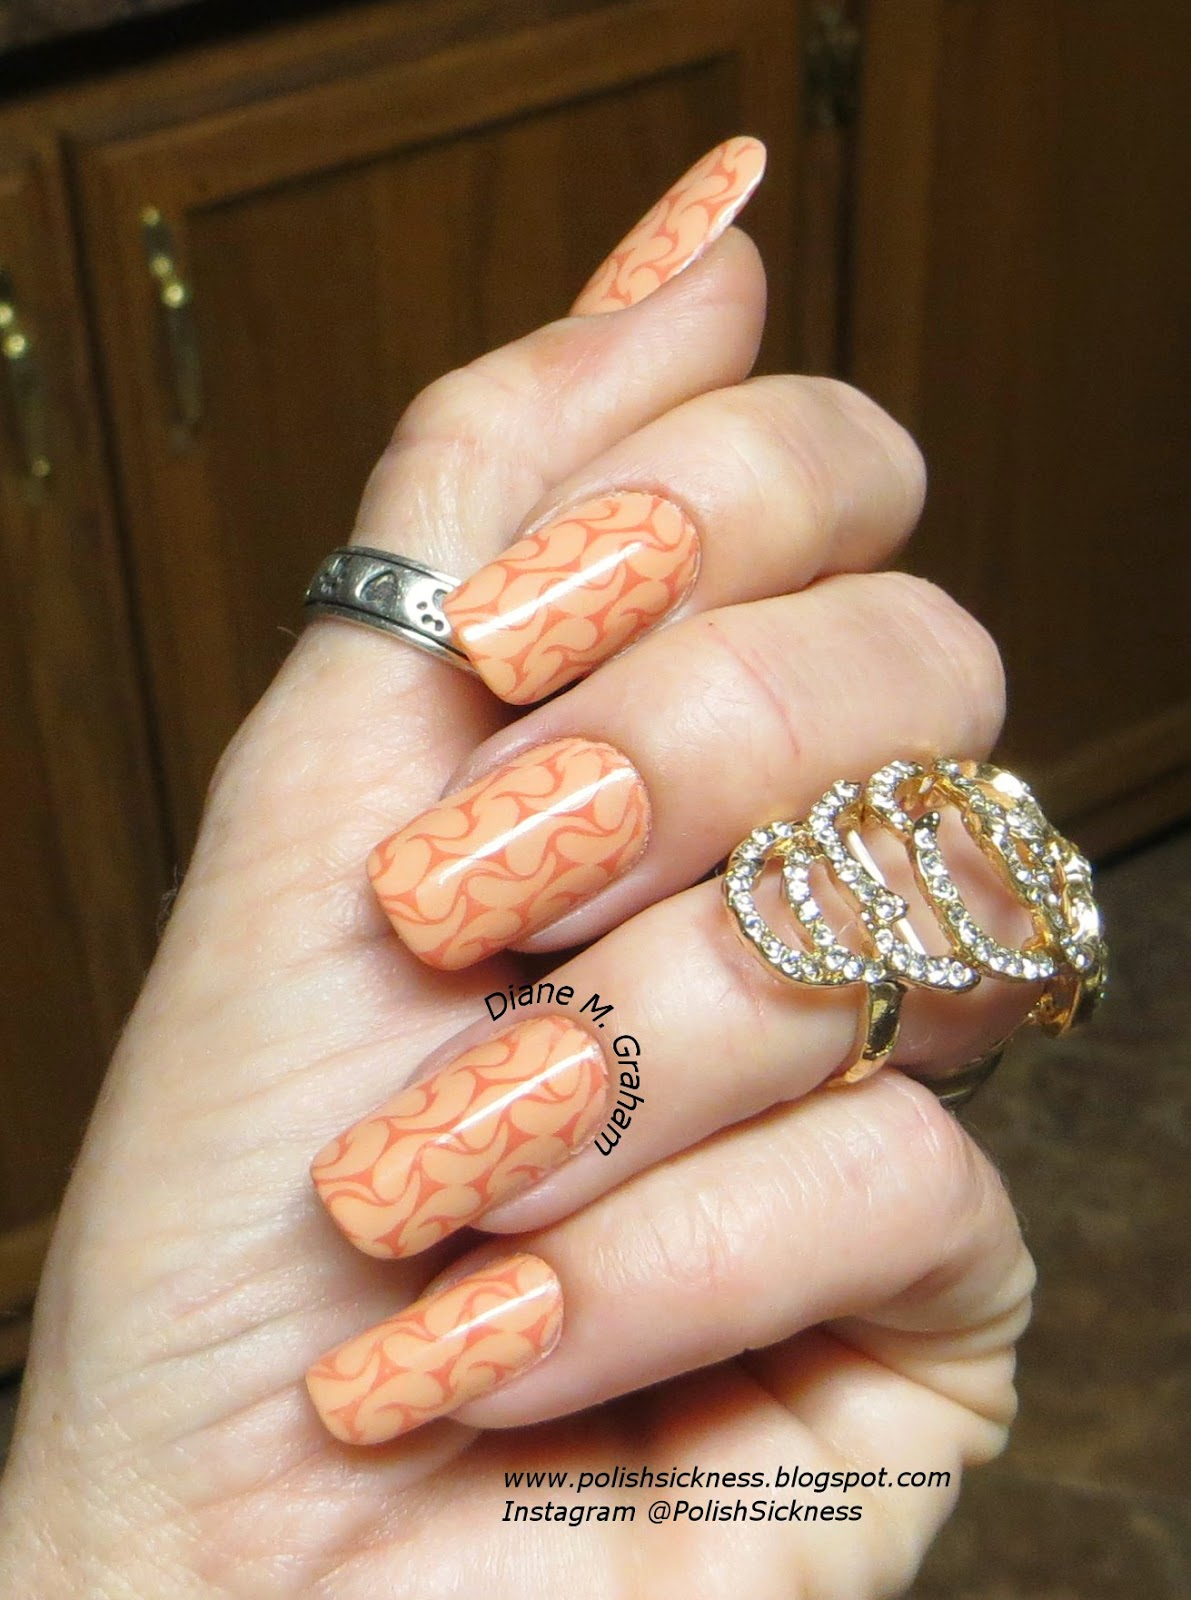 China Glaze Sunset Sail, Sally Hansen Complete Salon Manicure So Much Fawn, Ali Express 12-51 stamp